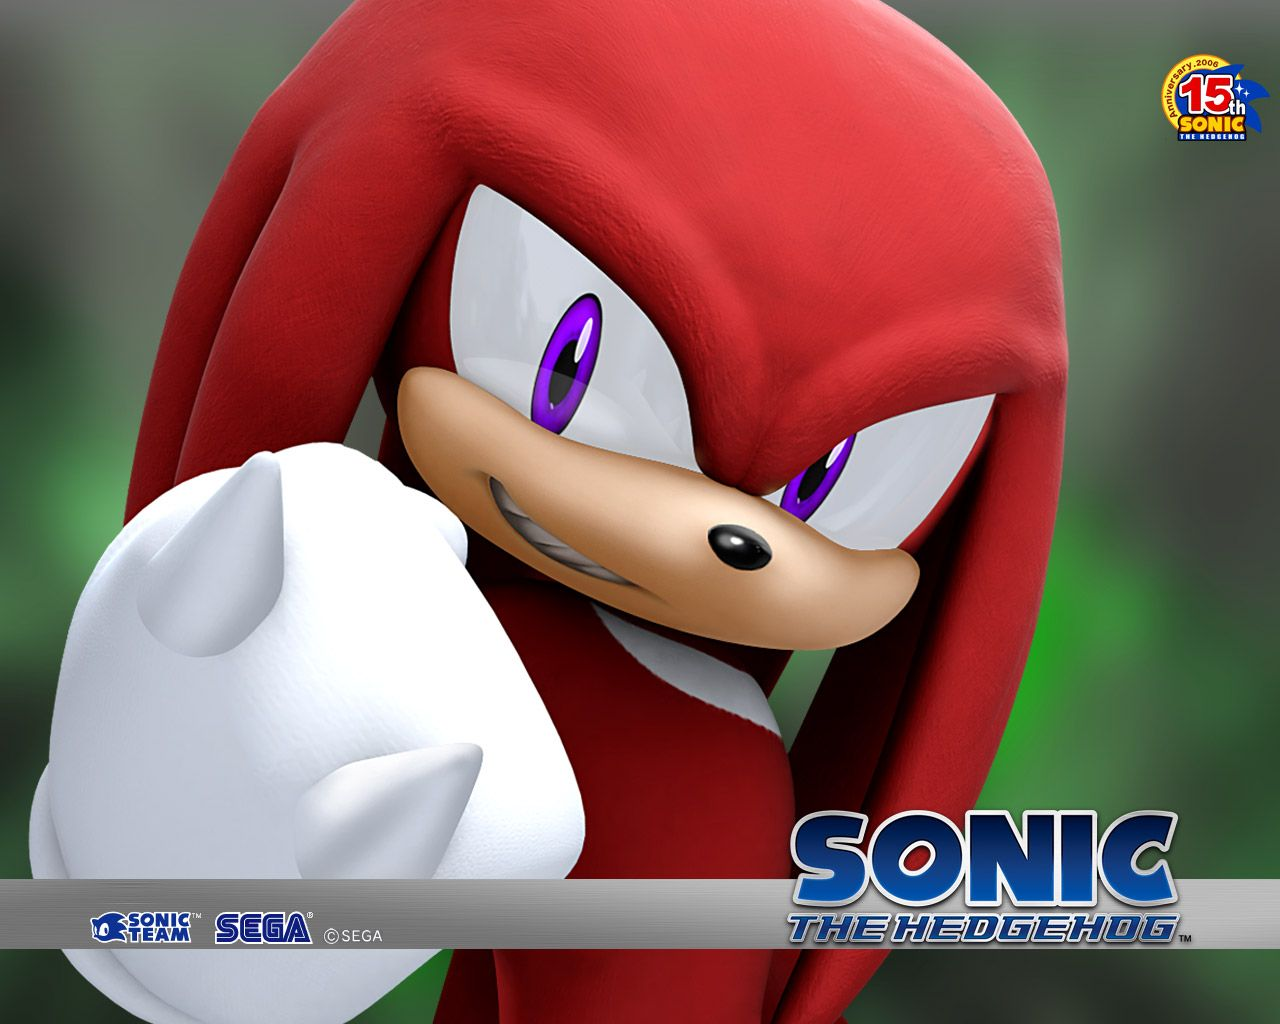 Knuckles The Echidna The Last Of His People A Stubborn Strongman Of The Freedom Fighters Sonic Sonic The Hedgehog Echidna